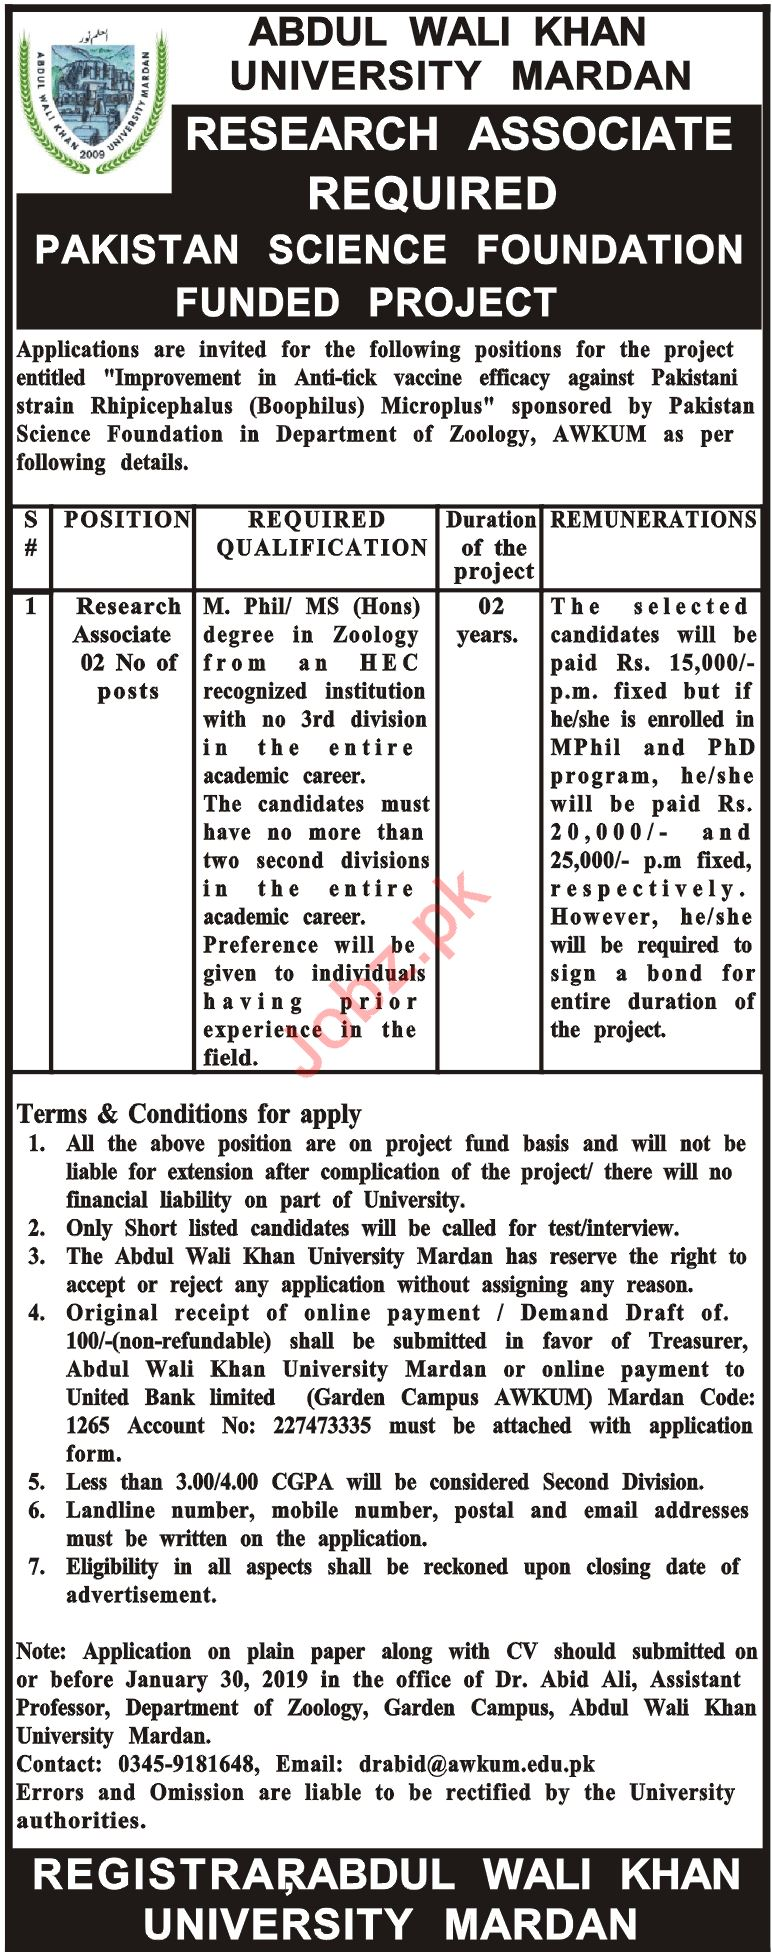 Abdul Wali Khan University Mardan Research Associate Jobs